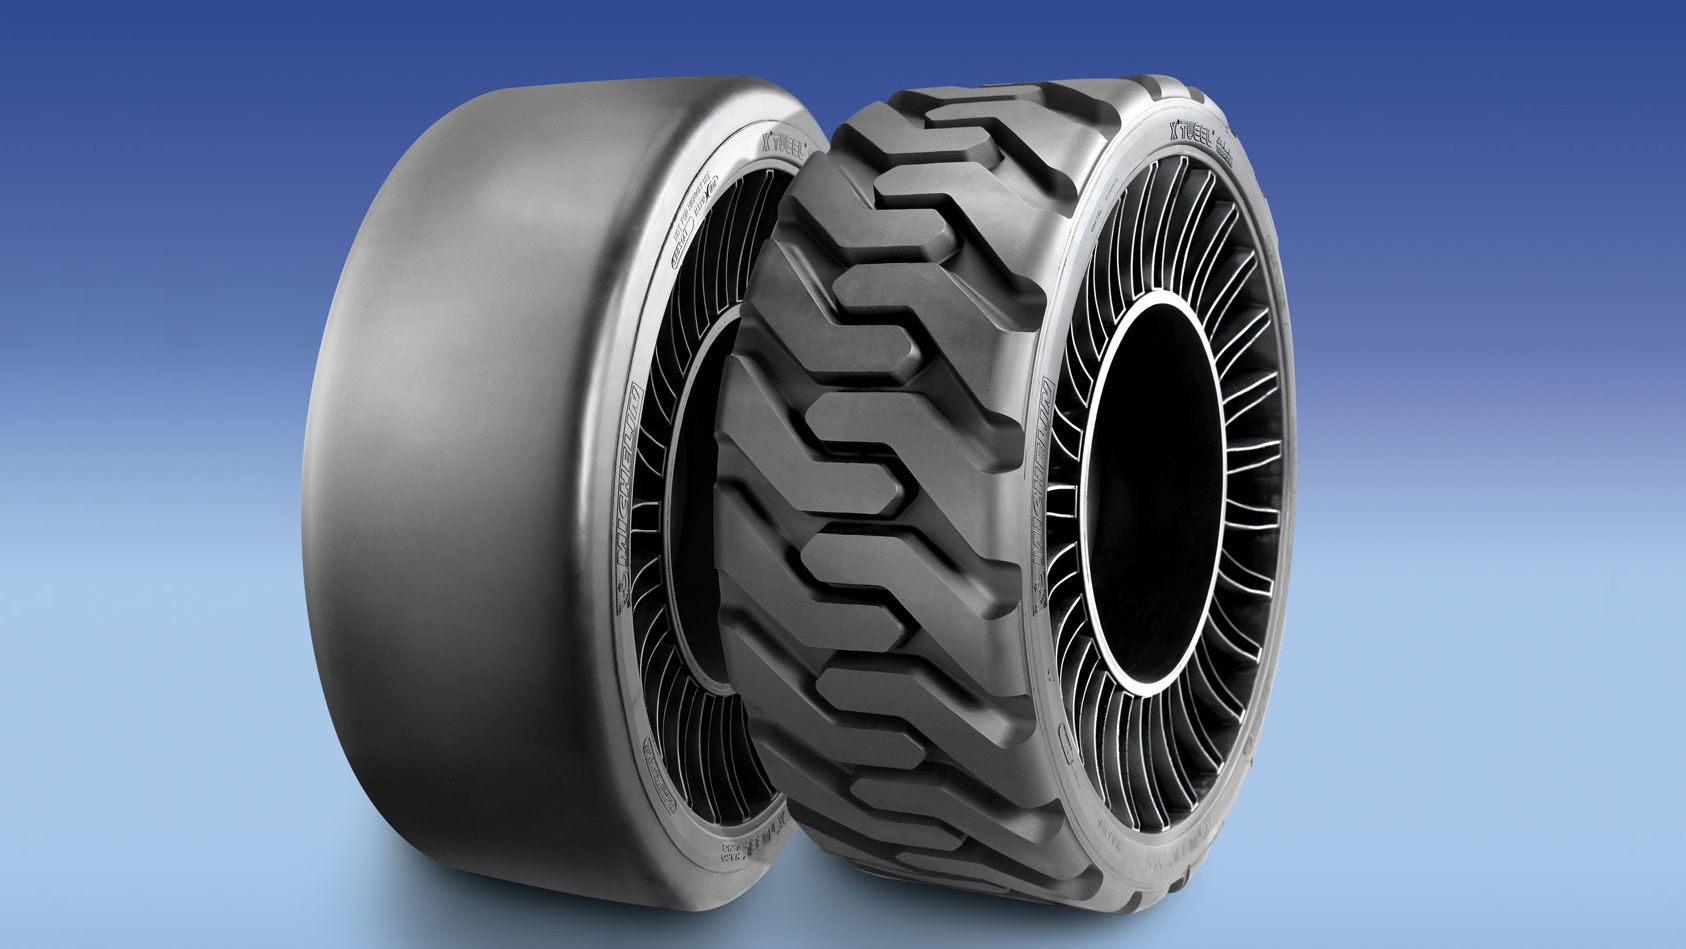 hight resolution of we ve been promised airless puncture proof tires for bloody ever by this point but pump haters your time is arriving starting next week